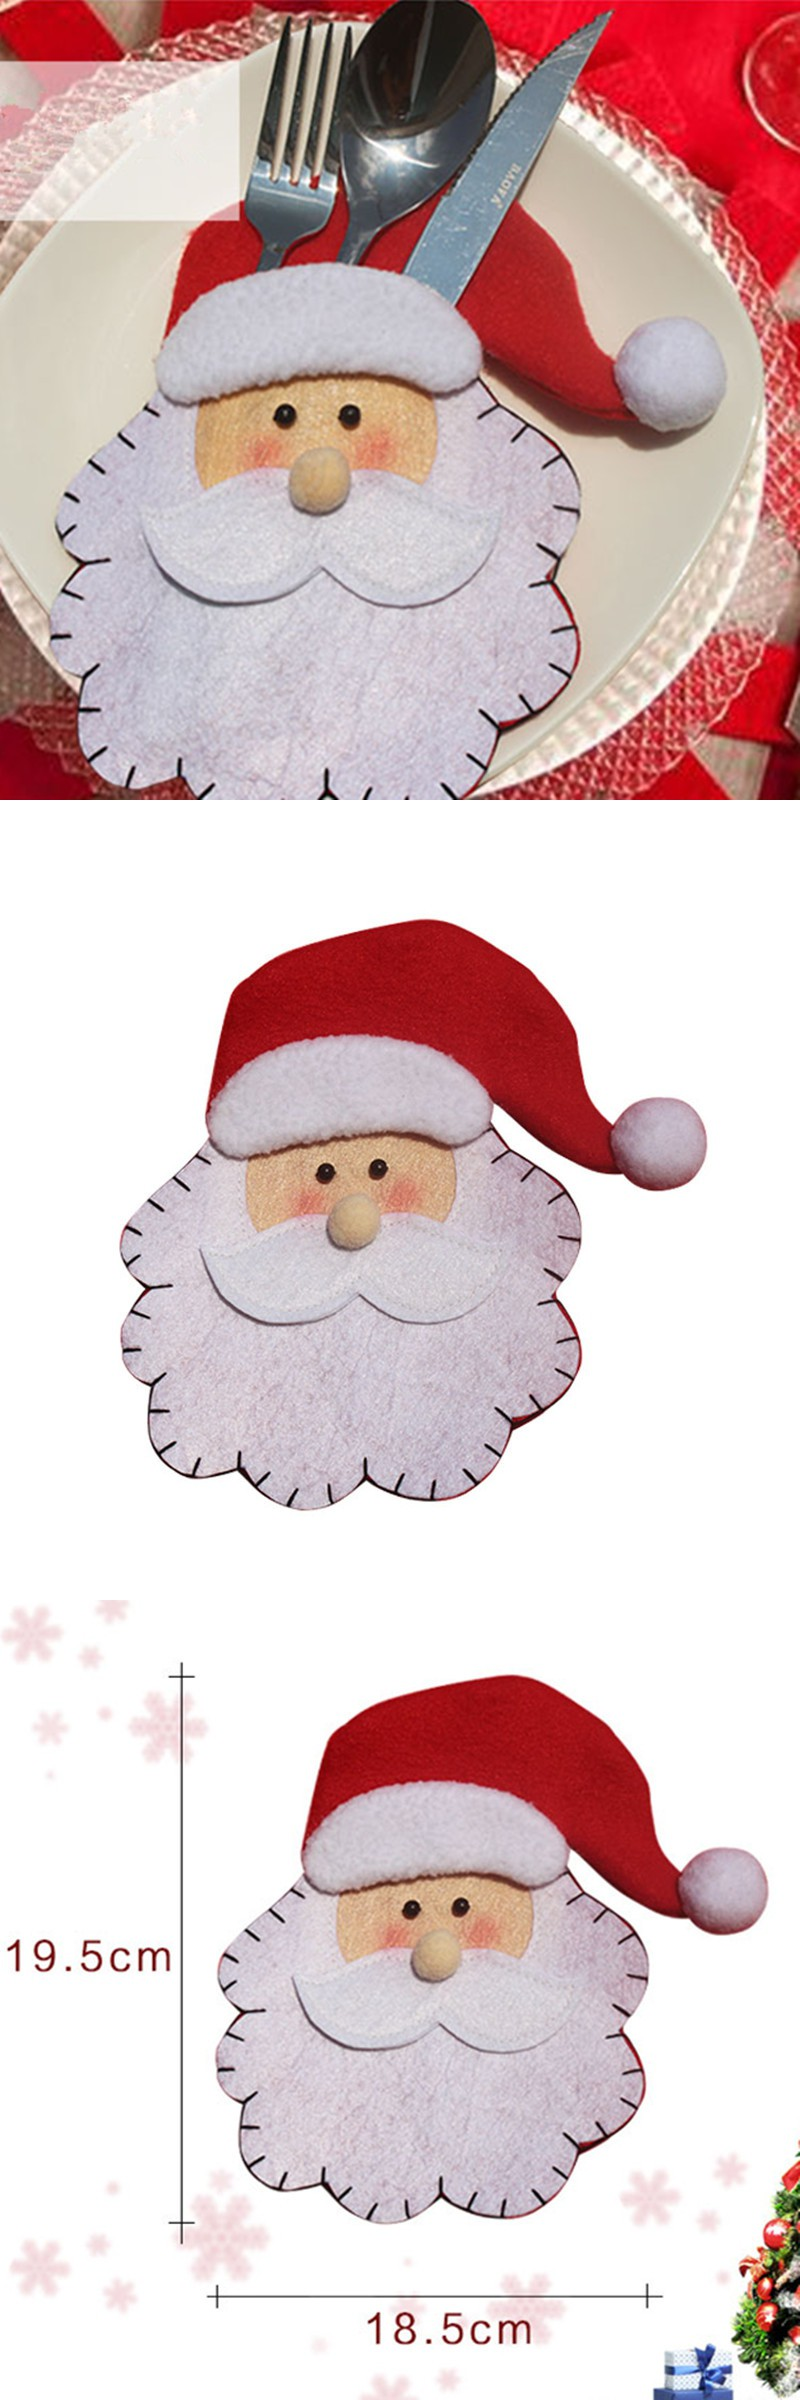 santa claus head cutlery creative home gifts bags christmas gifts factory outlets christmas decoration home decor - Christmas Decorations Factory Outlet